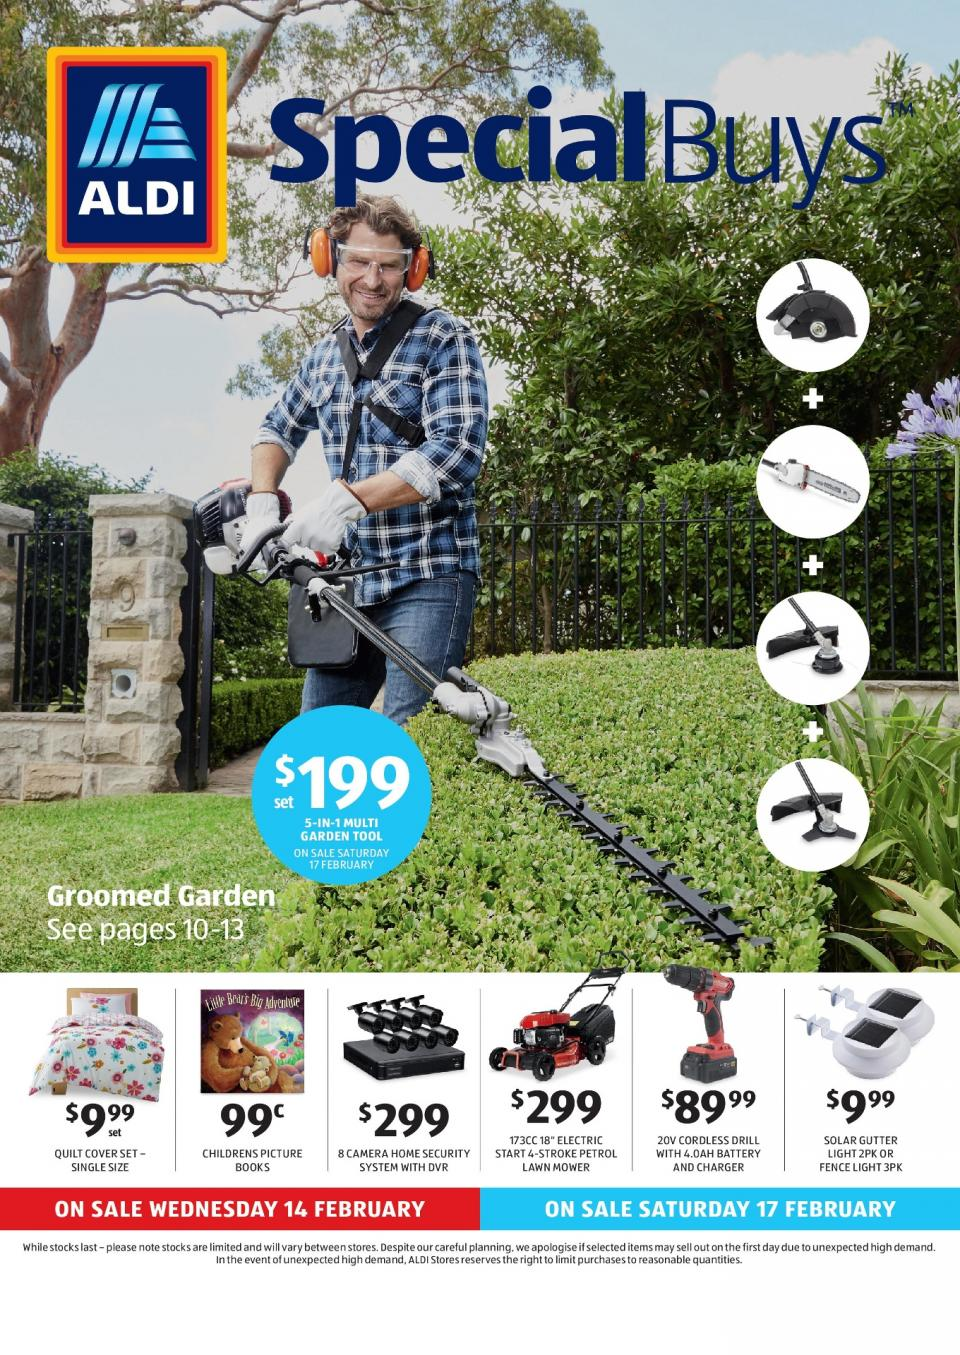 Aldi special buys week 7 2018 for Aldi gardening tools 2015